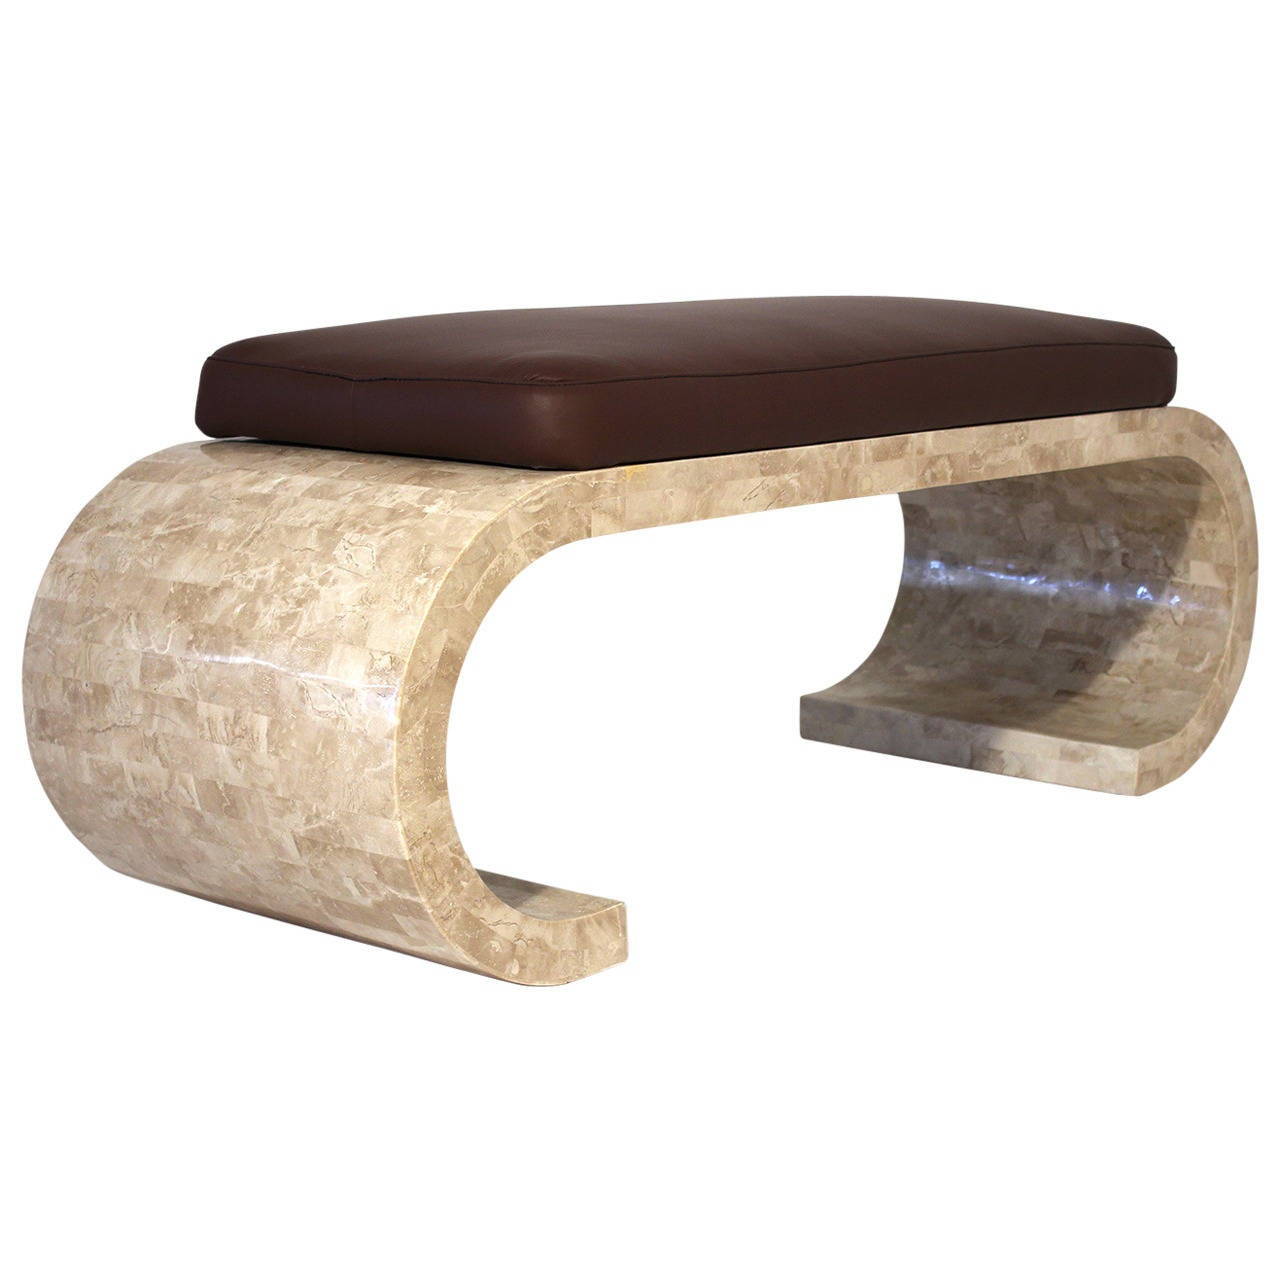 Tessellated Stone Bench With Leather Seat For Sale At 1stdibs